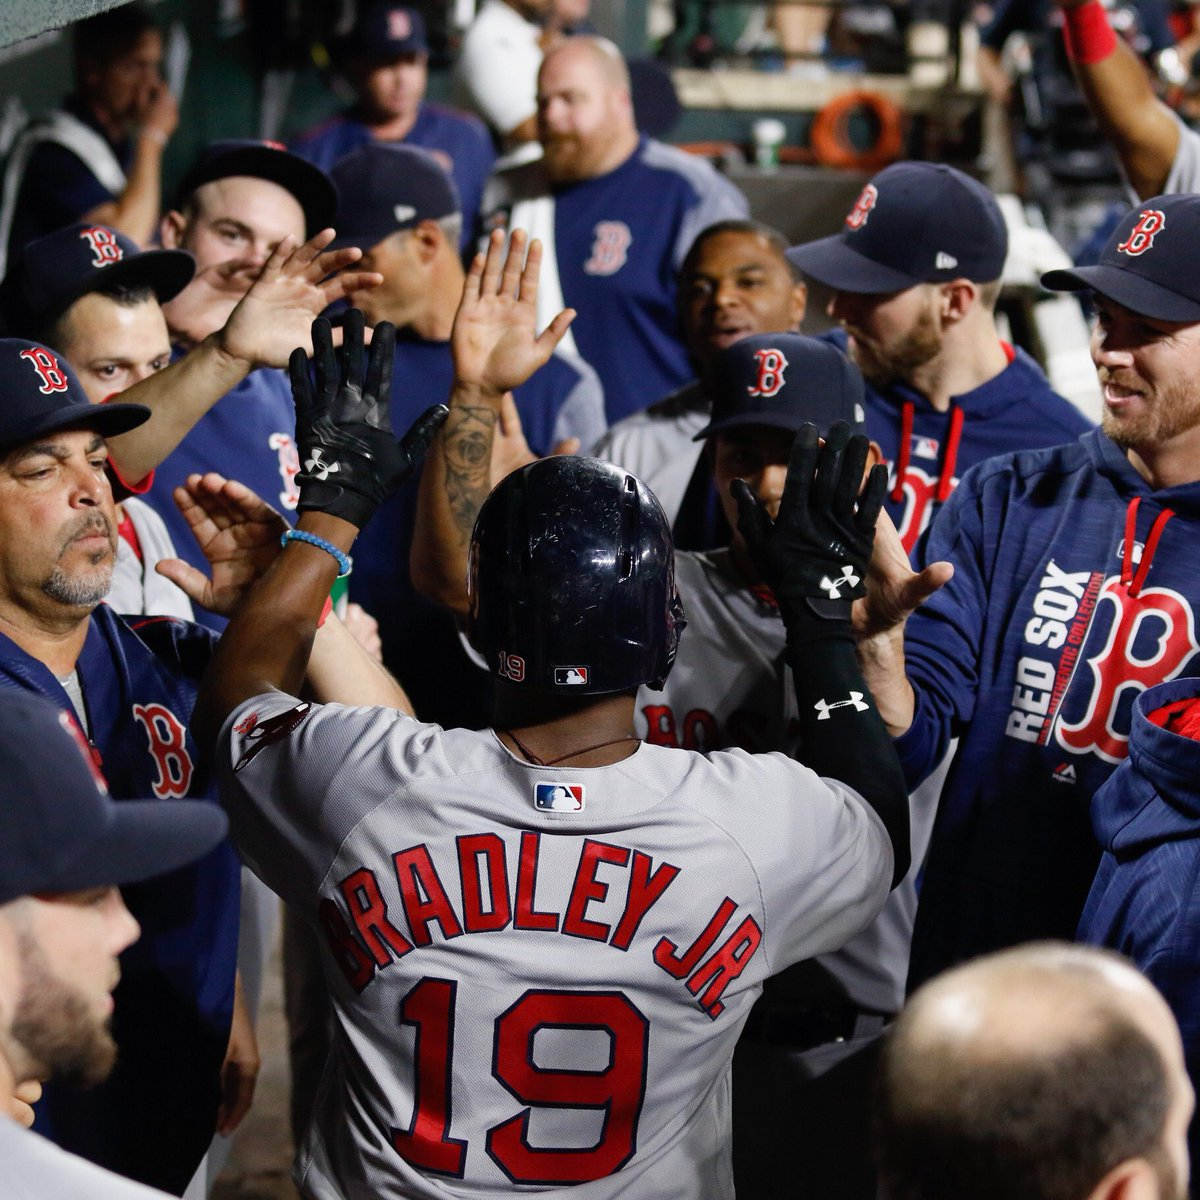 RECAP: The #RedSox defeated the Orioles 1-0 in 11 innings last night without an RBI.